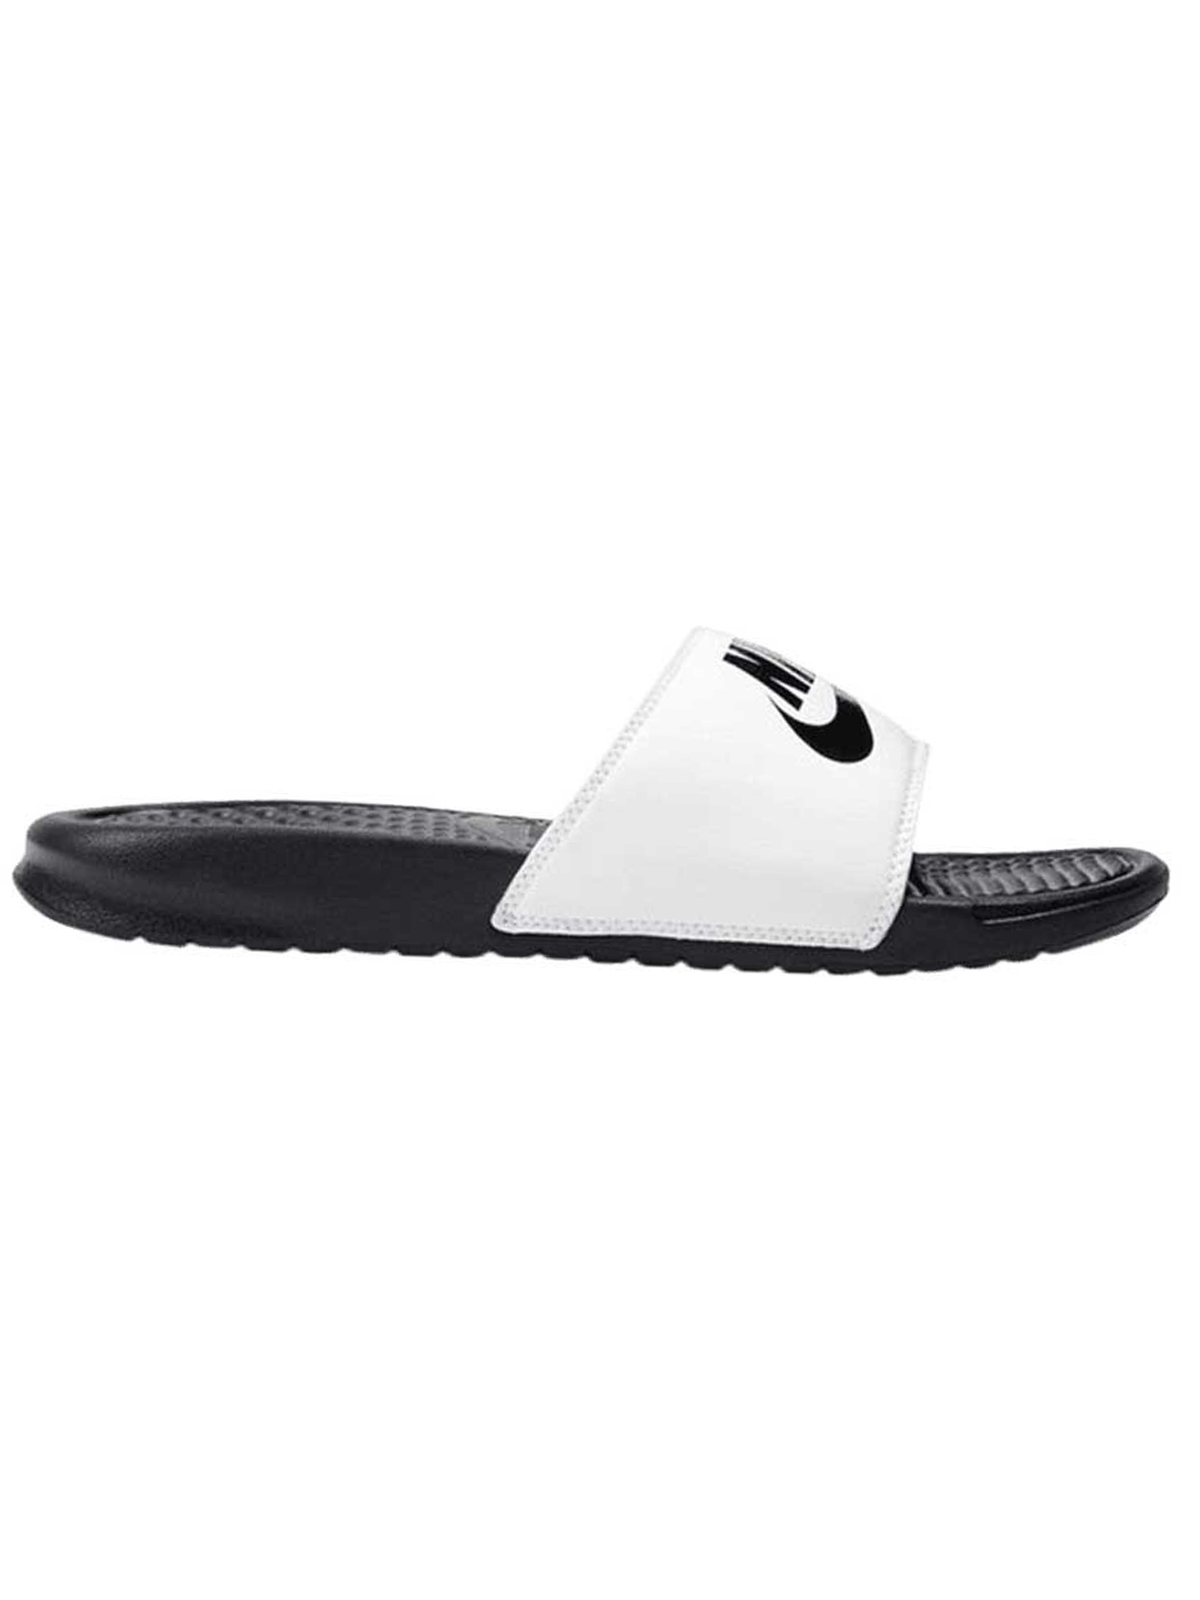 save off ebf72 40059 NIKE Benassi slippers Just Do it